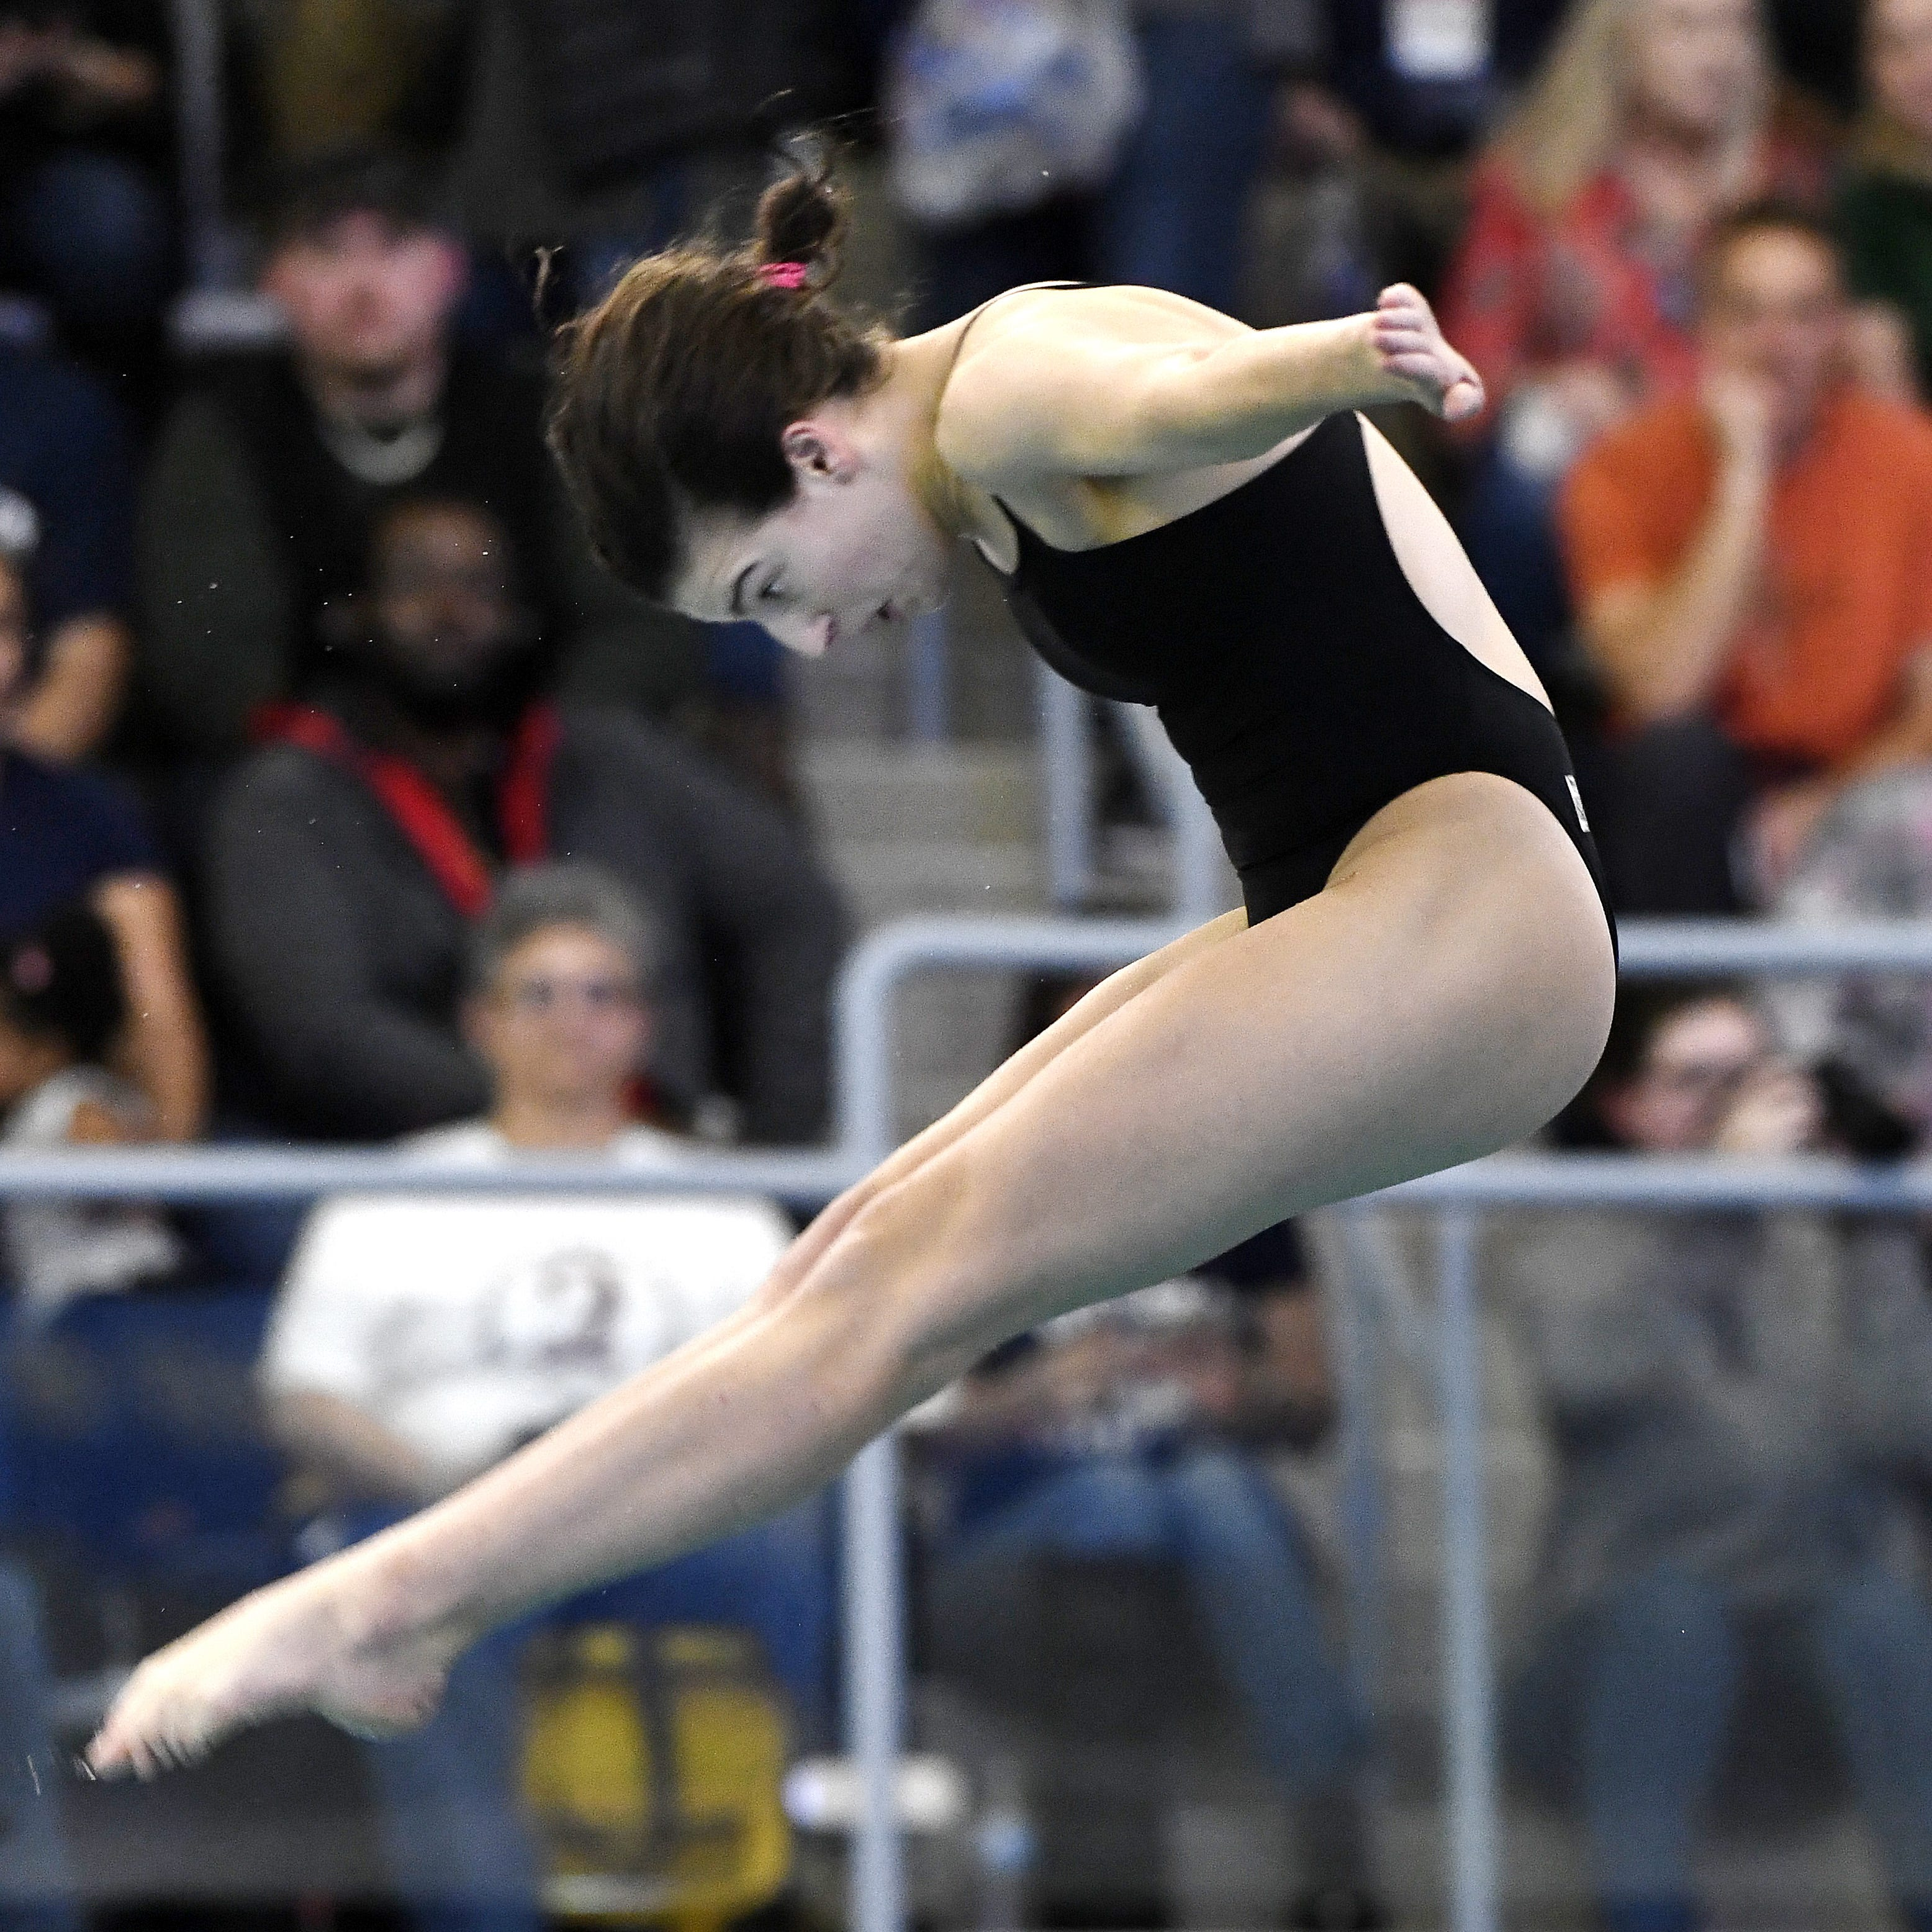 Brighton's Hannah Butler wins diving state championship